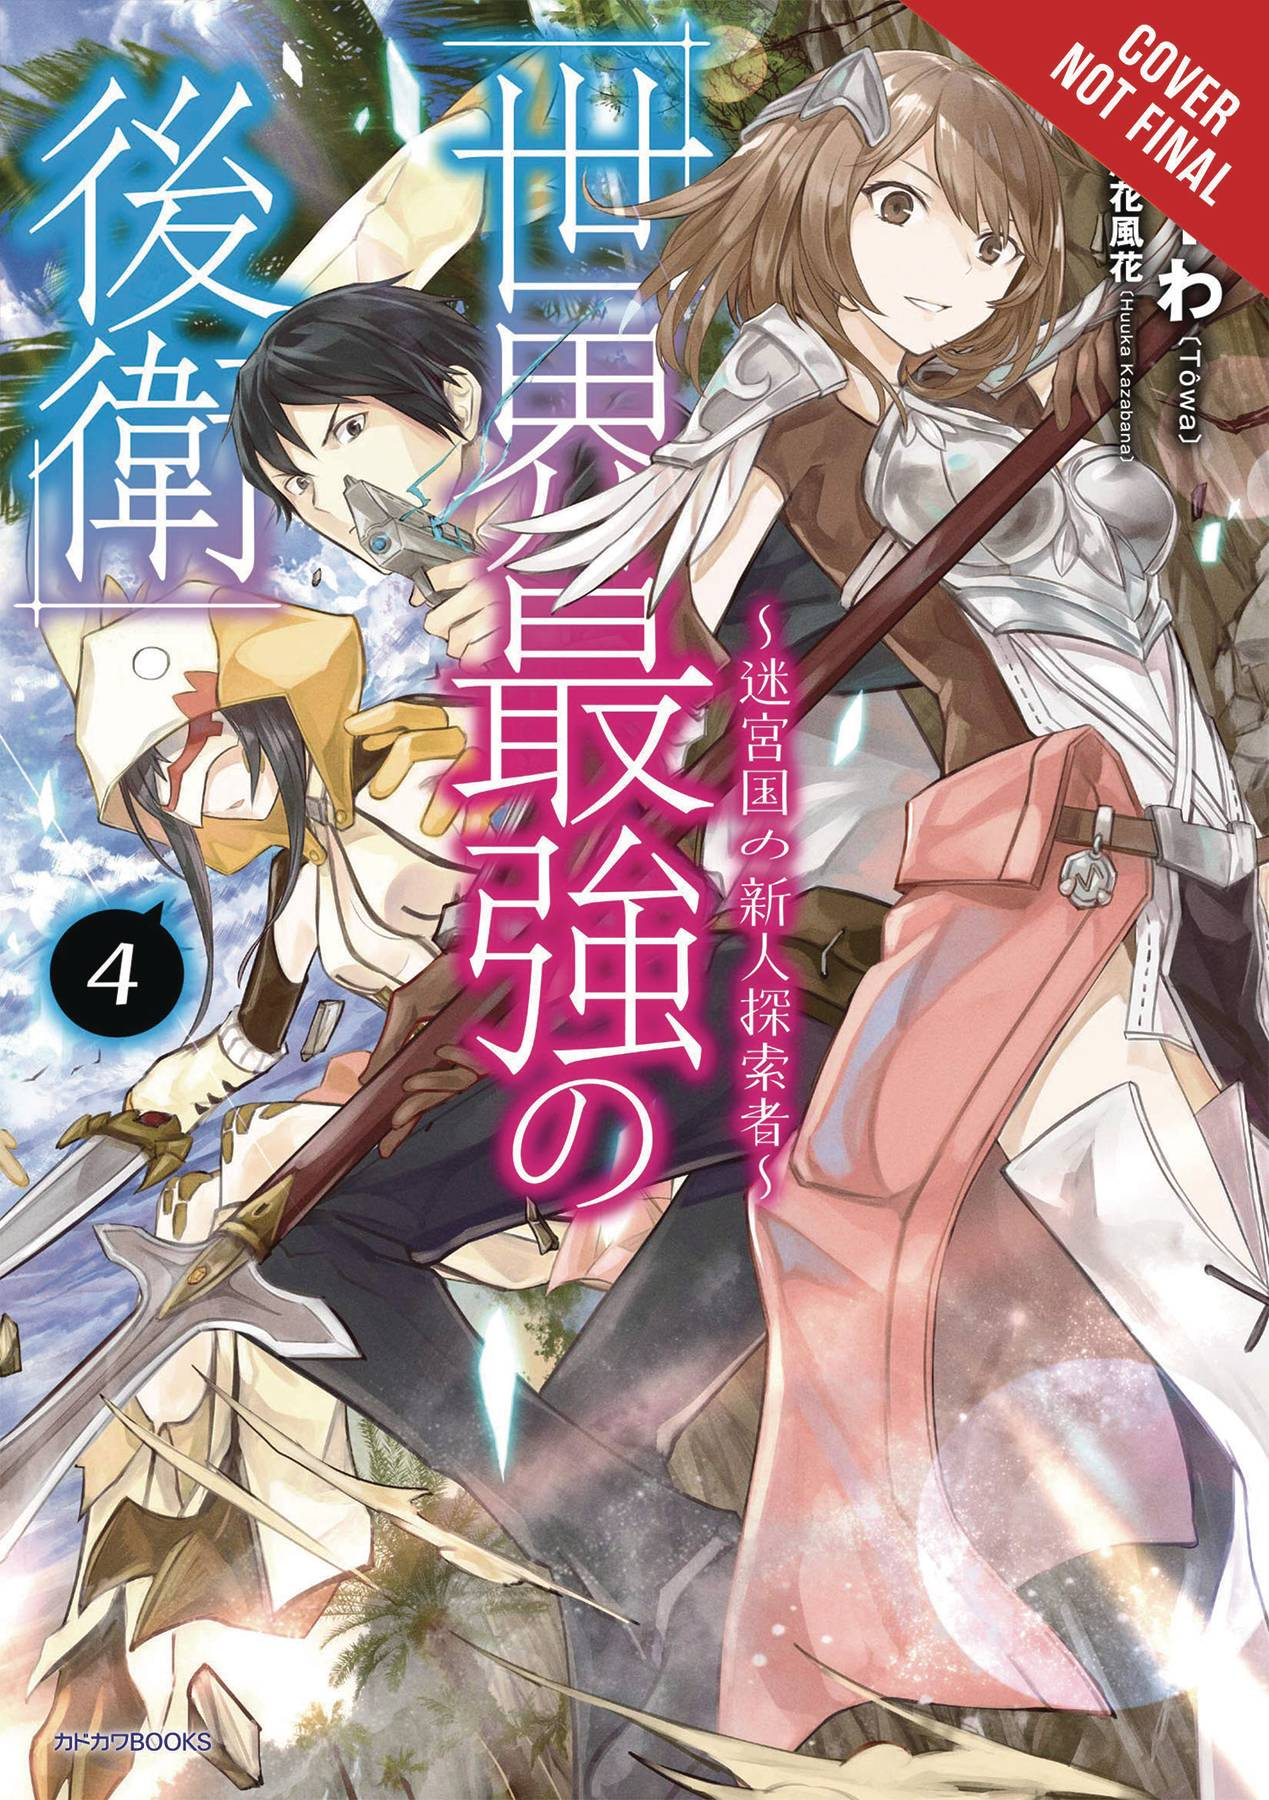 WORLD STRONGEST REARGUARD LABYRINTH NOVICE NOVEL SC VOL 04 (